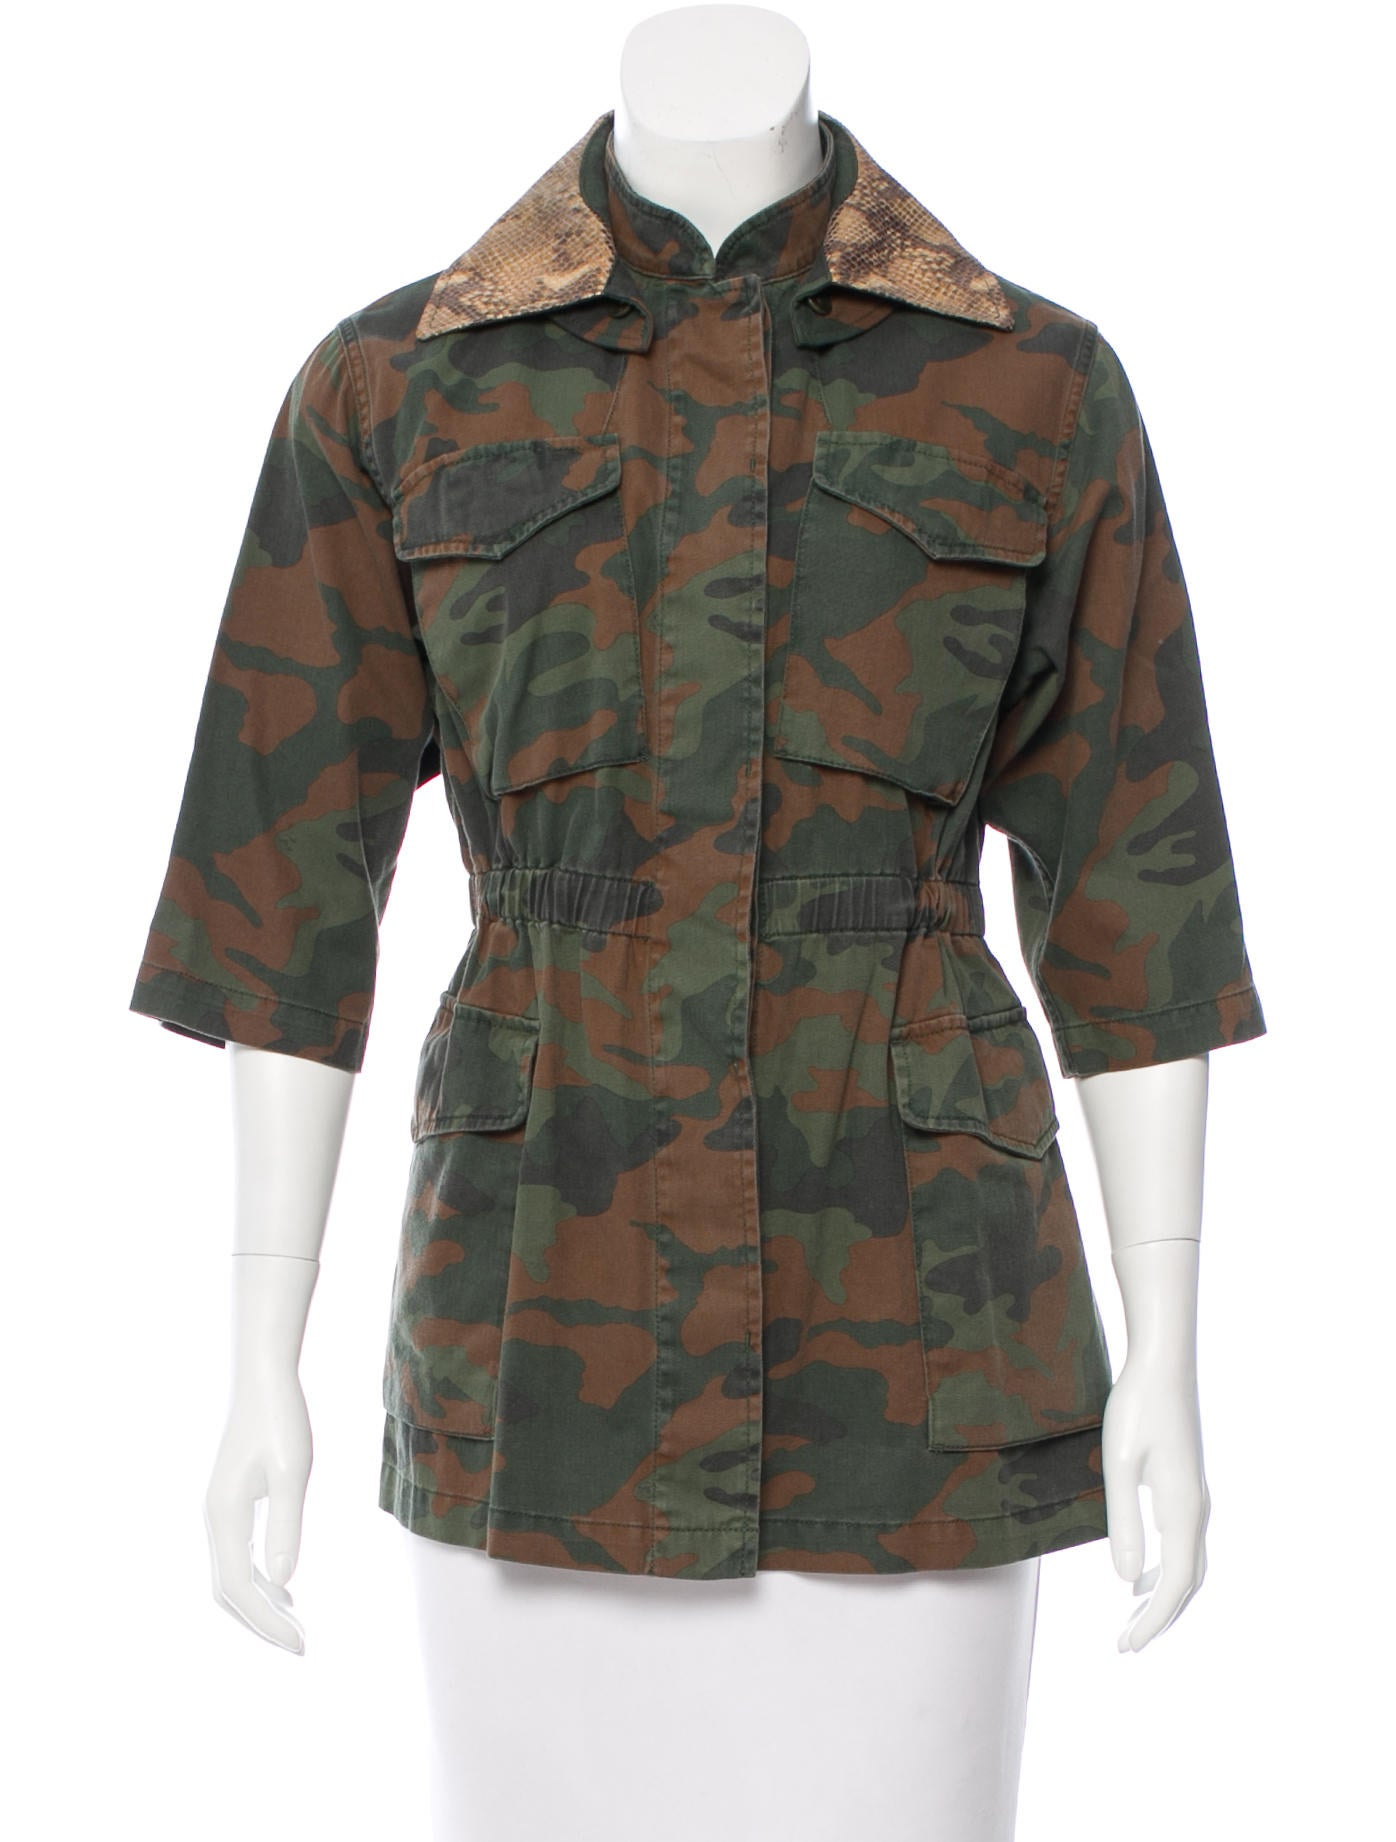 Dining Room Table Size For 8 Fay Camouflage Utility Jacket W Tags Clothing